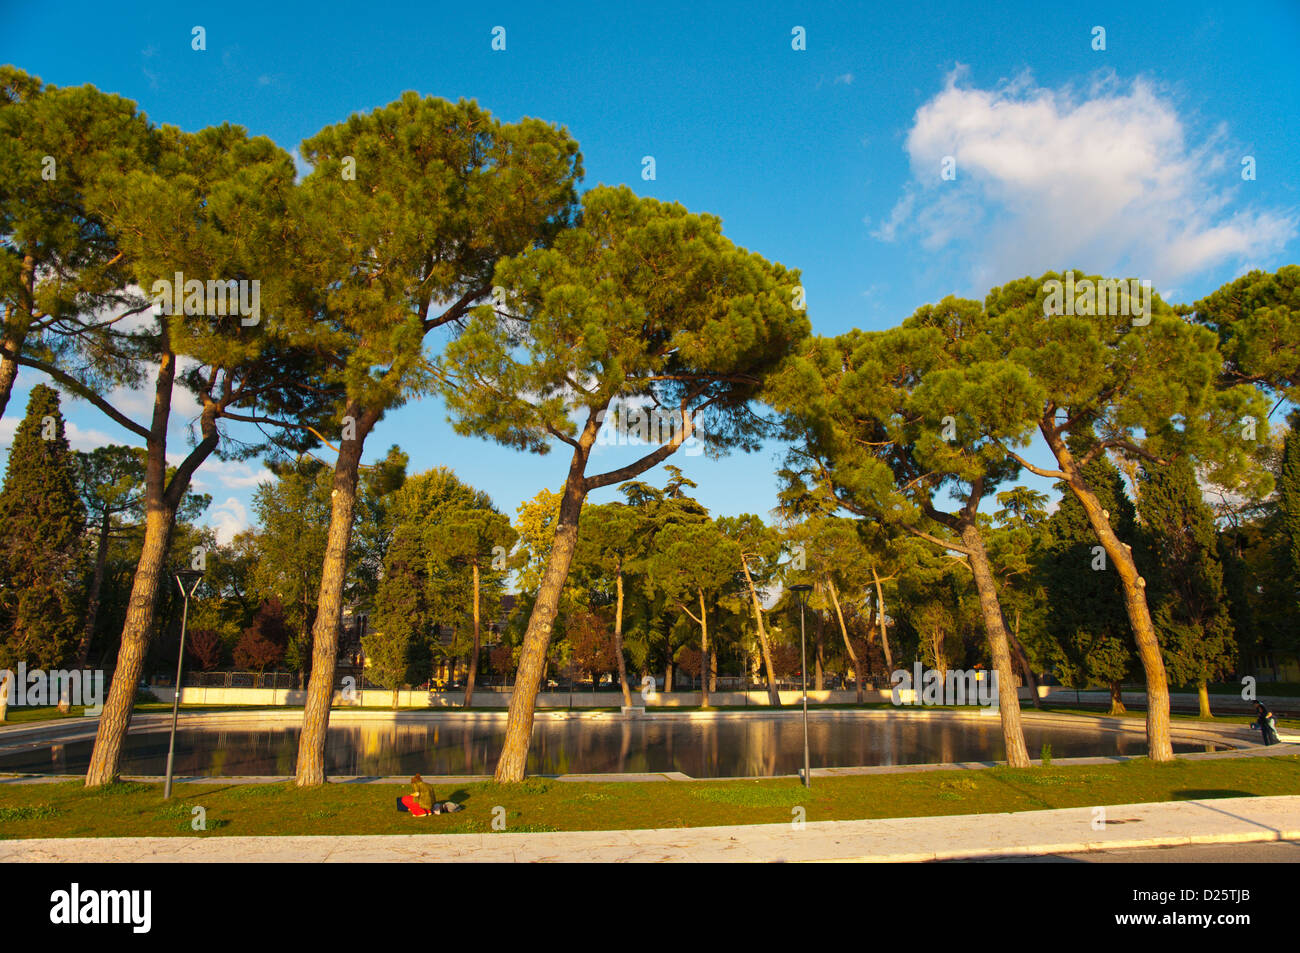 Giardini Pubblici Arsenale park central Verona city the Veneto region Italy Europe - Stock Image